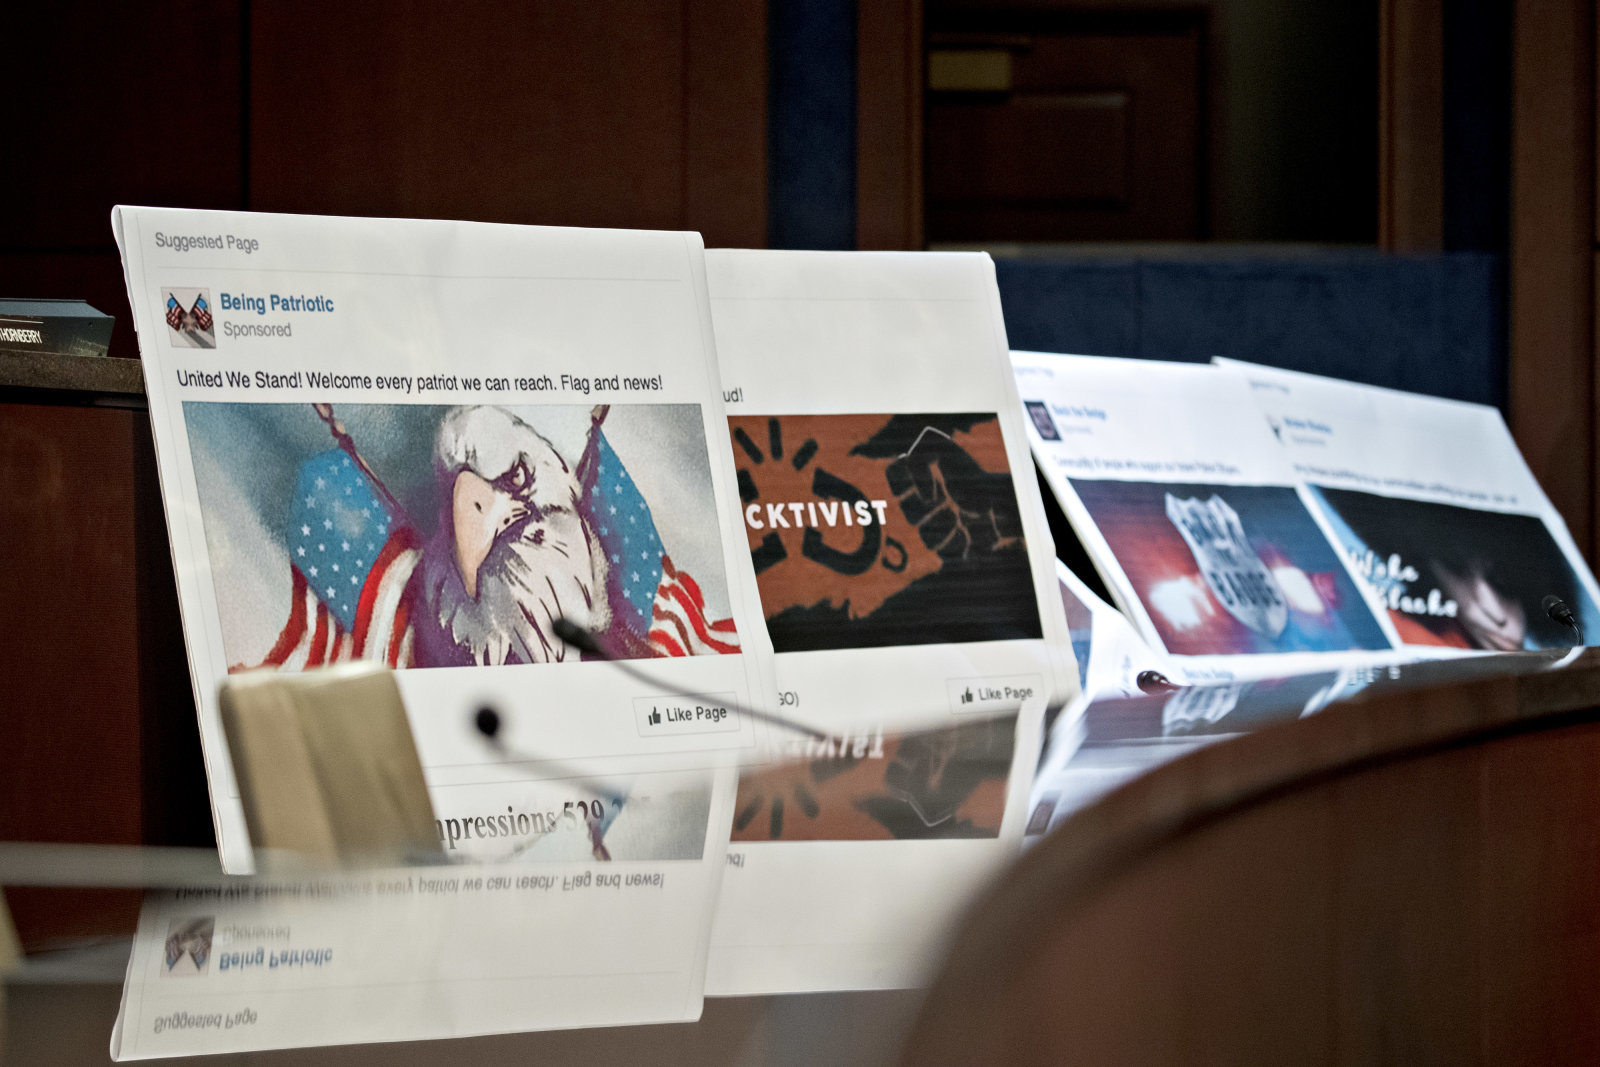 Displays showing social media posts are seen during a House Intelligence Committee hearing in Washington, D.C., U.S., on Wednesday, Nov. 1, 2017. The top Democrat on the Senate Intelligence Committee berated lawyers today for social media giants Facebook, Twitter and Google for a lethargic response to Russian interference in U.S. politics, as the companies' lawyers faced a second day of grilling in Congress. Photographer: Andrew Harrer/Bloomberg via Getty Images